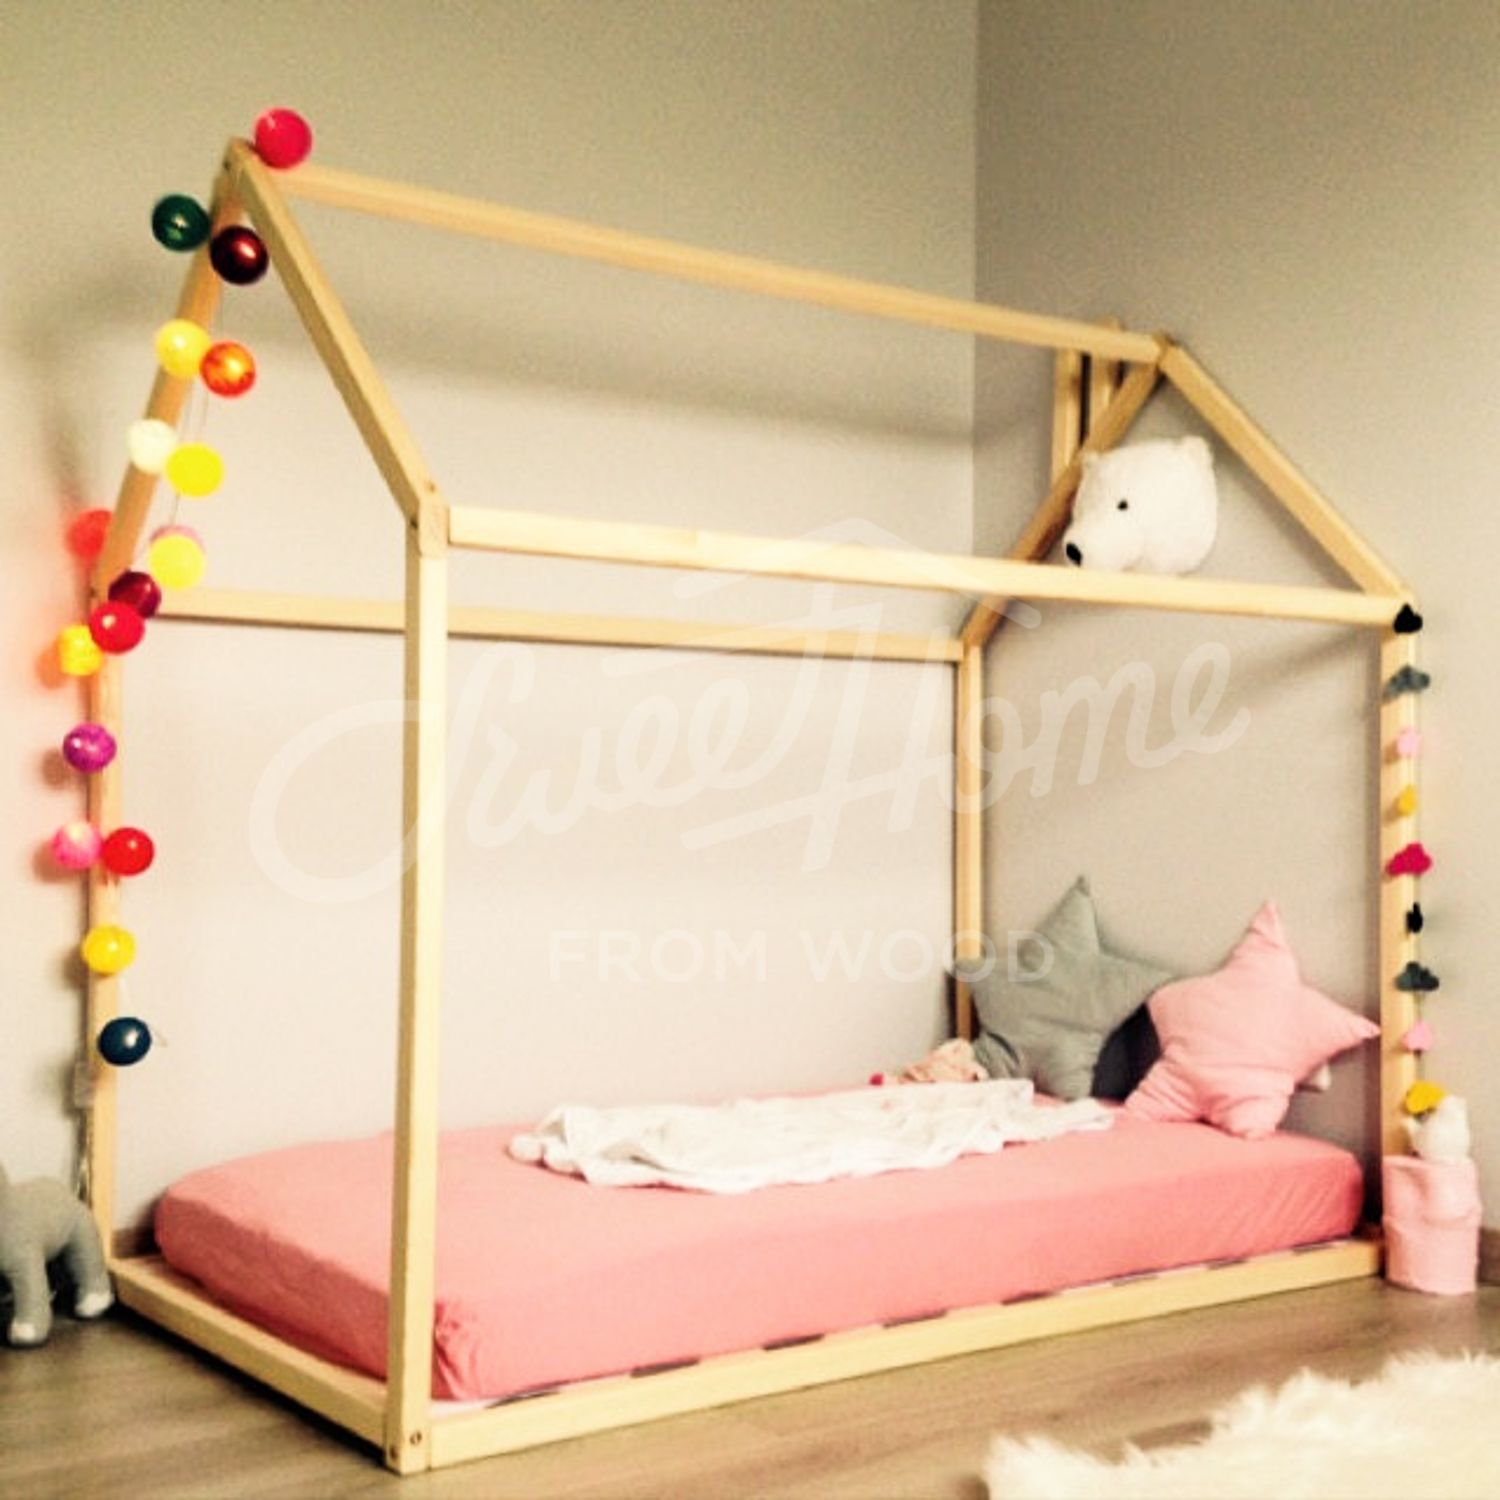 Toddler bed house bed tent bed children bed wooden house wood